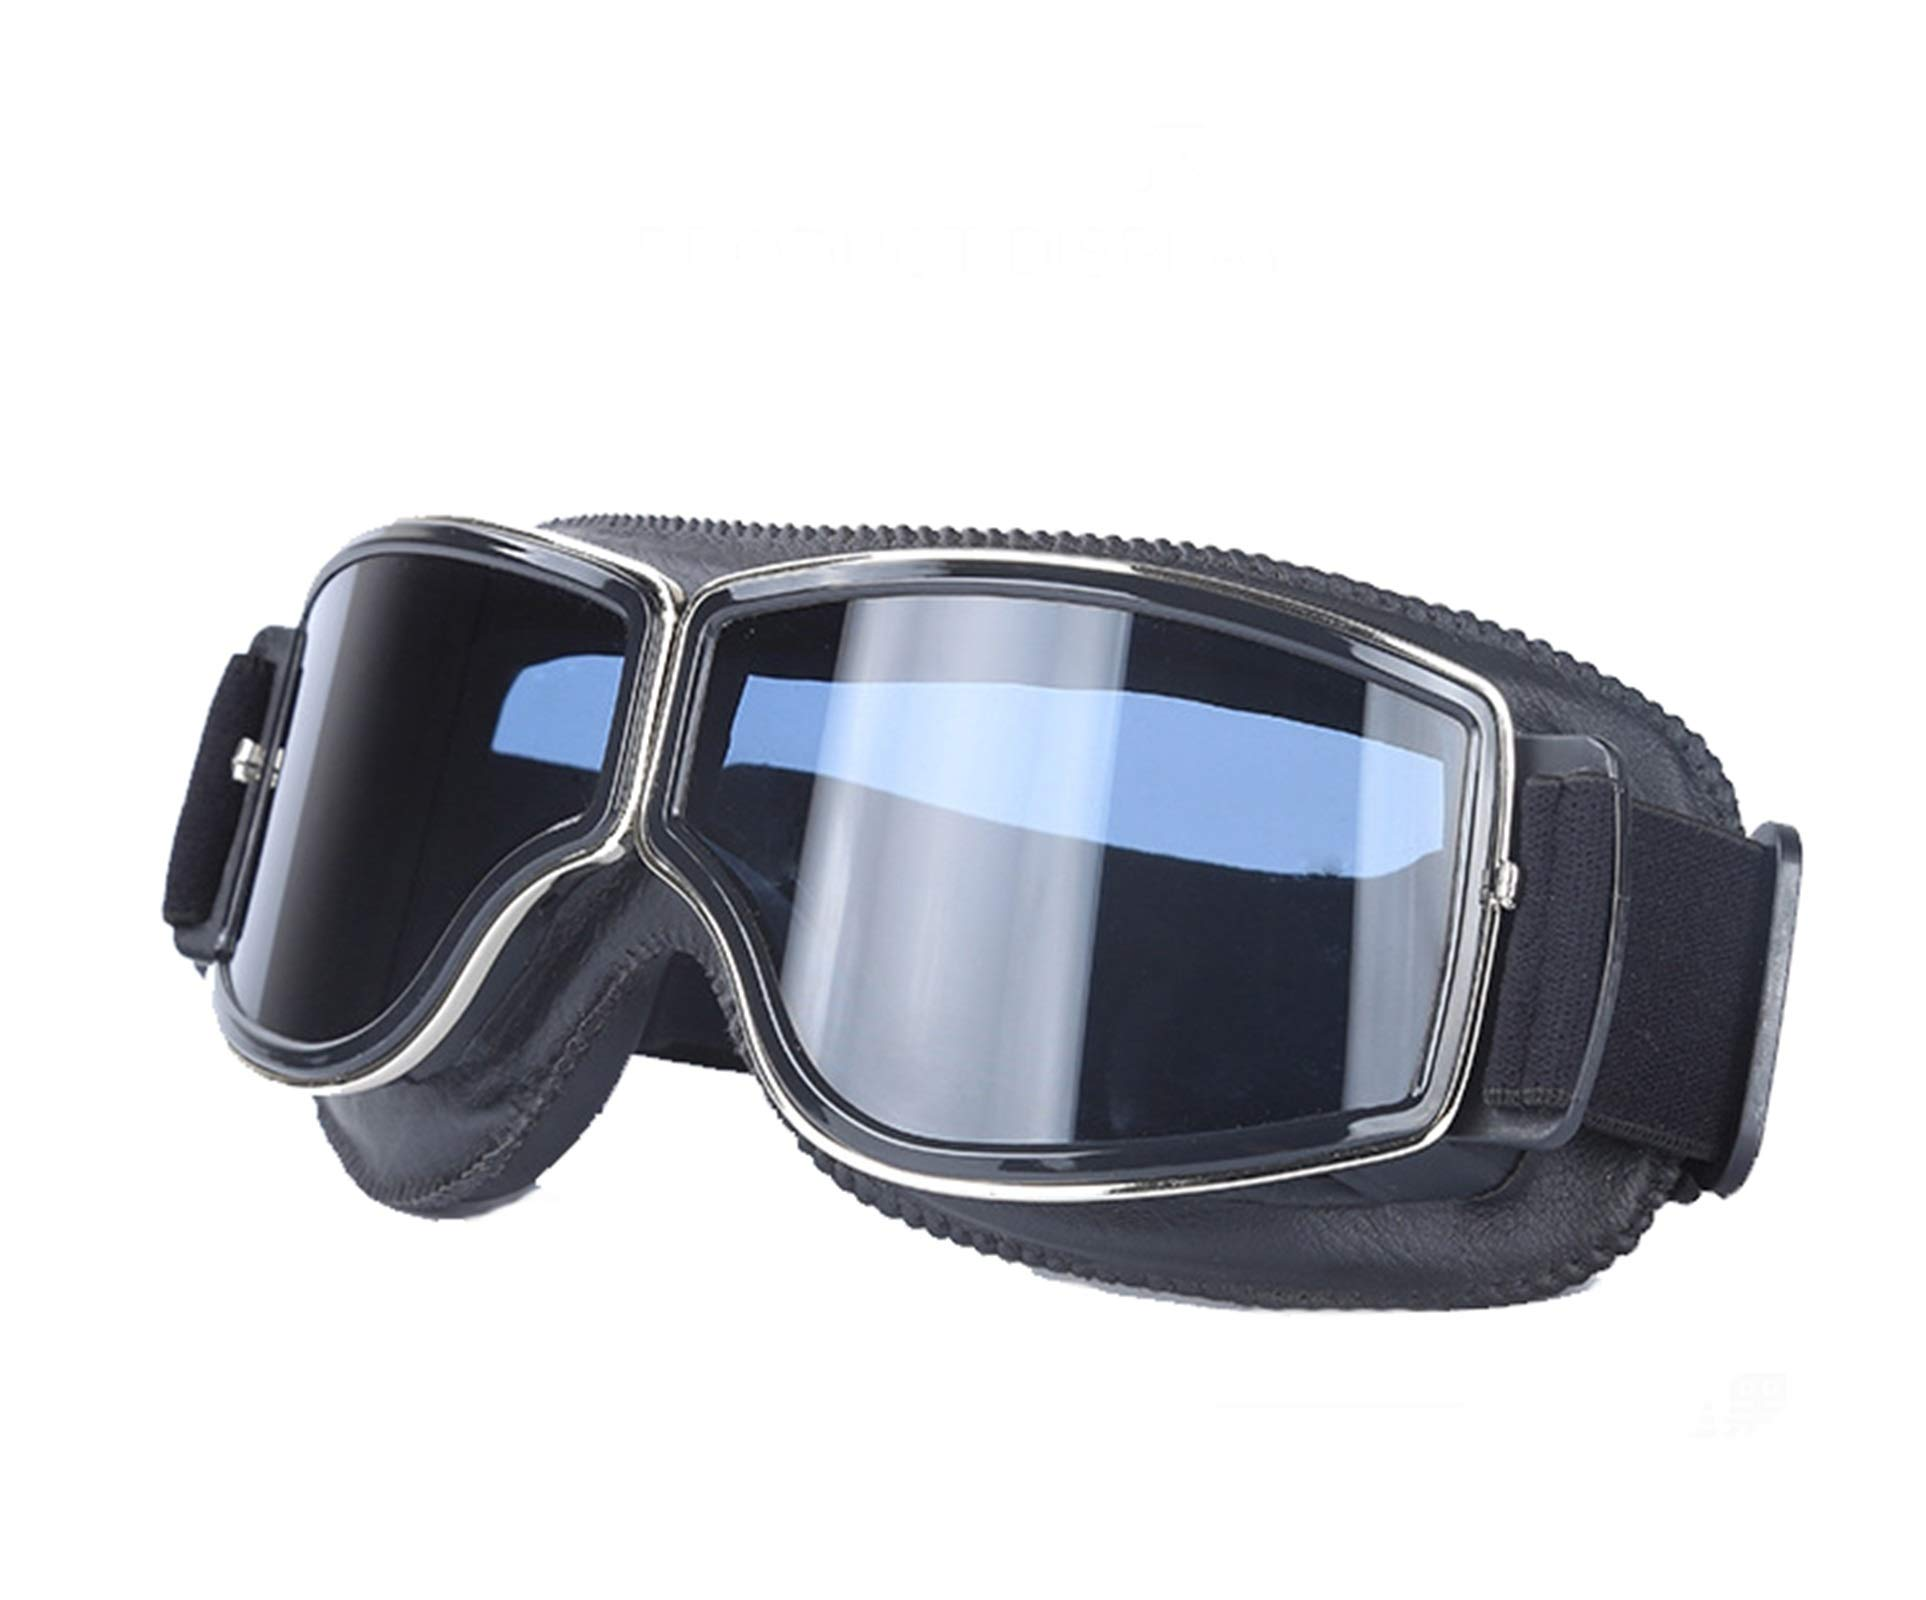 Adisaer Polarized Cycling Glasses Locomotive Retro Helmet mask Goggles Off-Road Cycling Goggles Black Gray for Adults